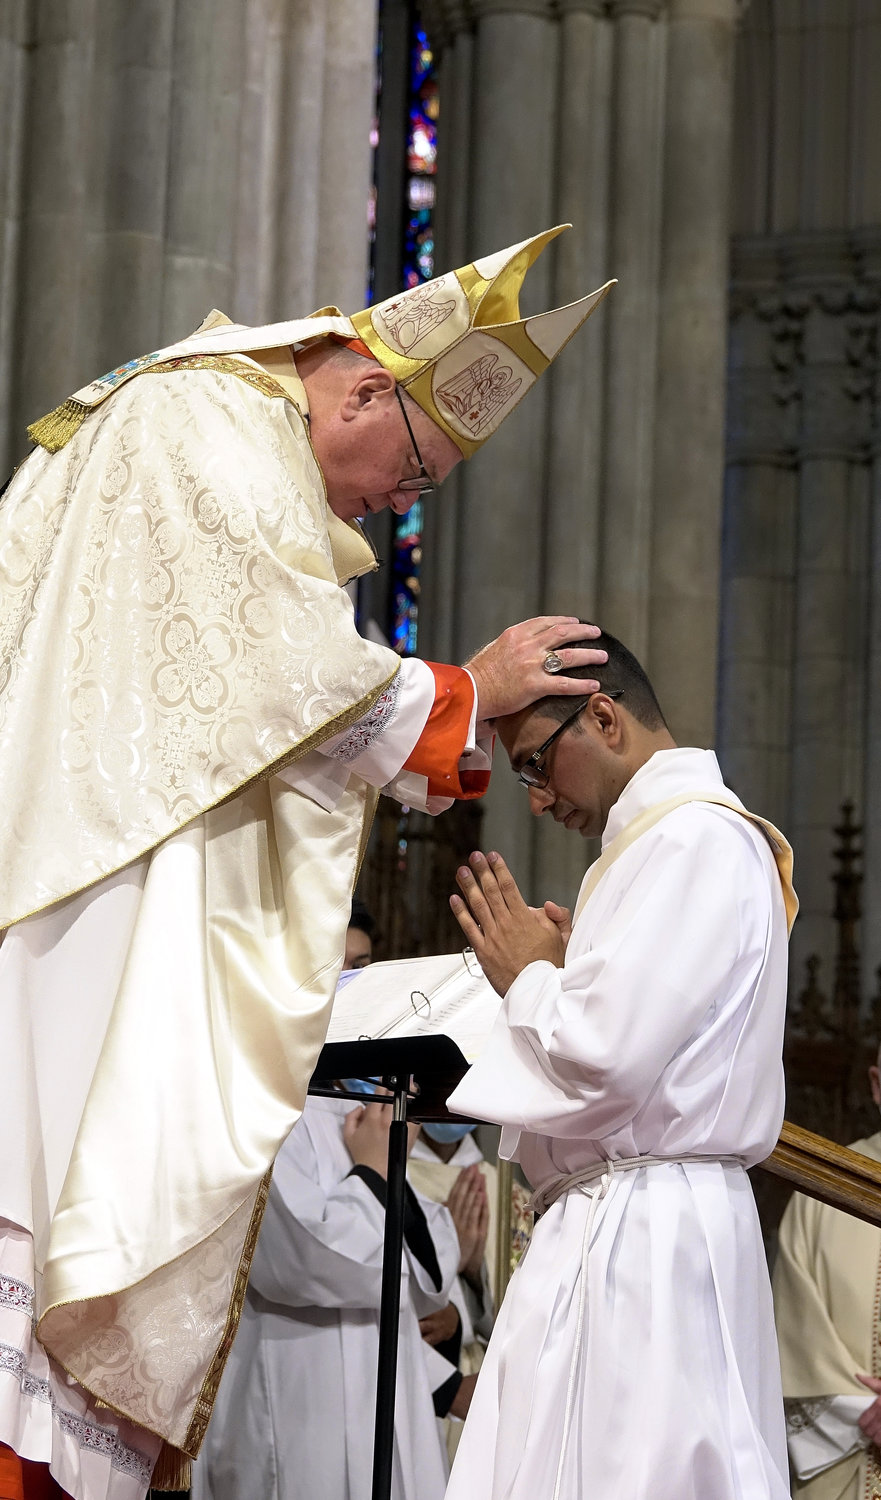 Cardinal Dolan lays hands on Father Roland Pereira, M.Id., during the Rite of Ordination.